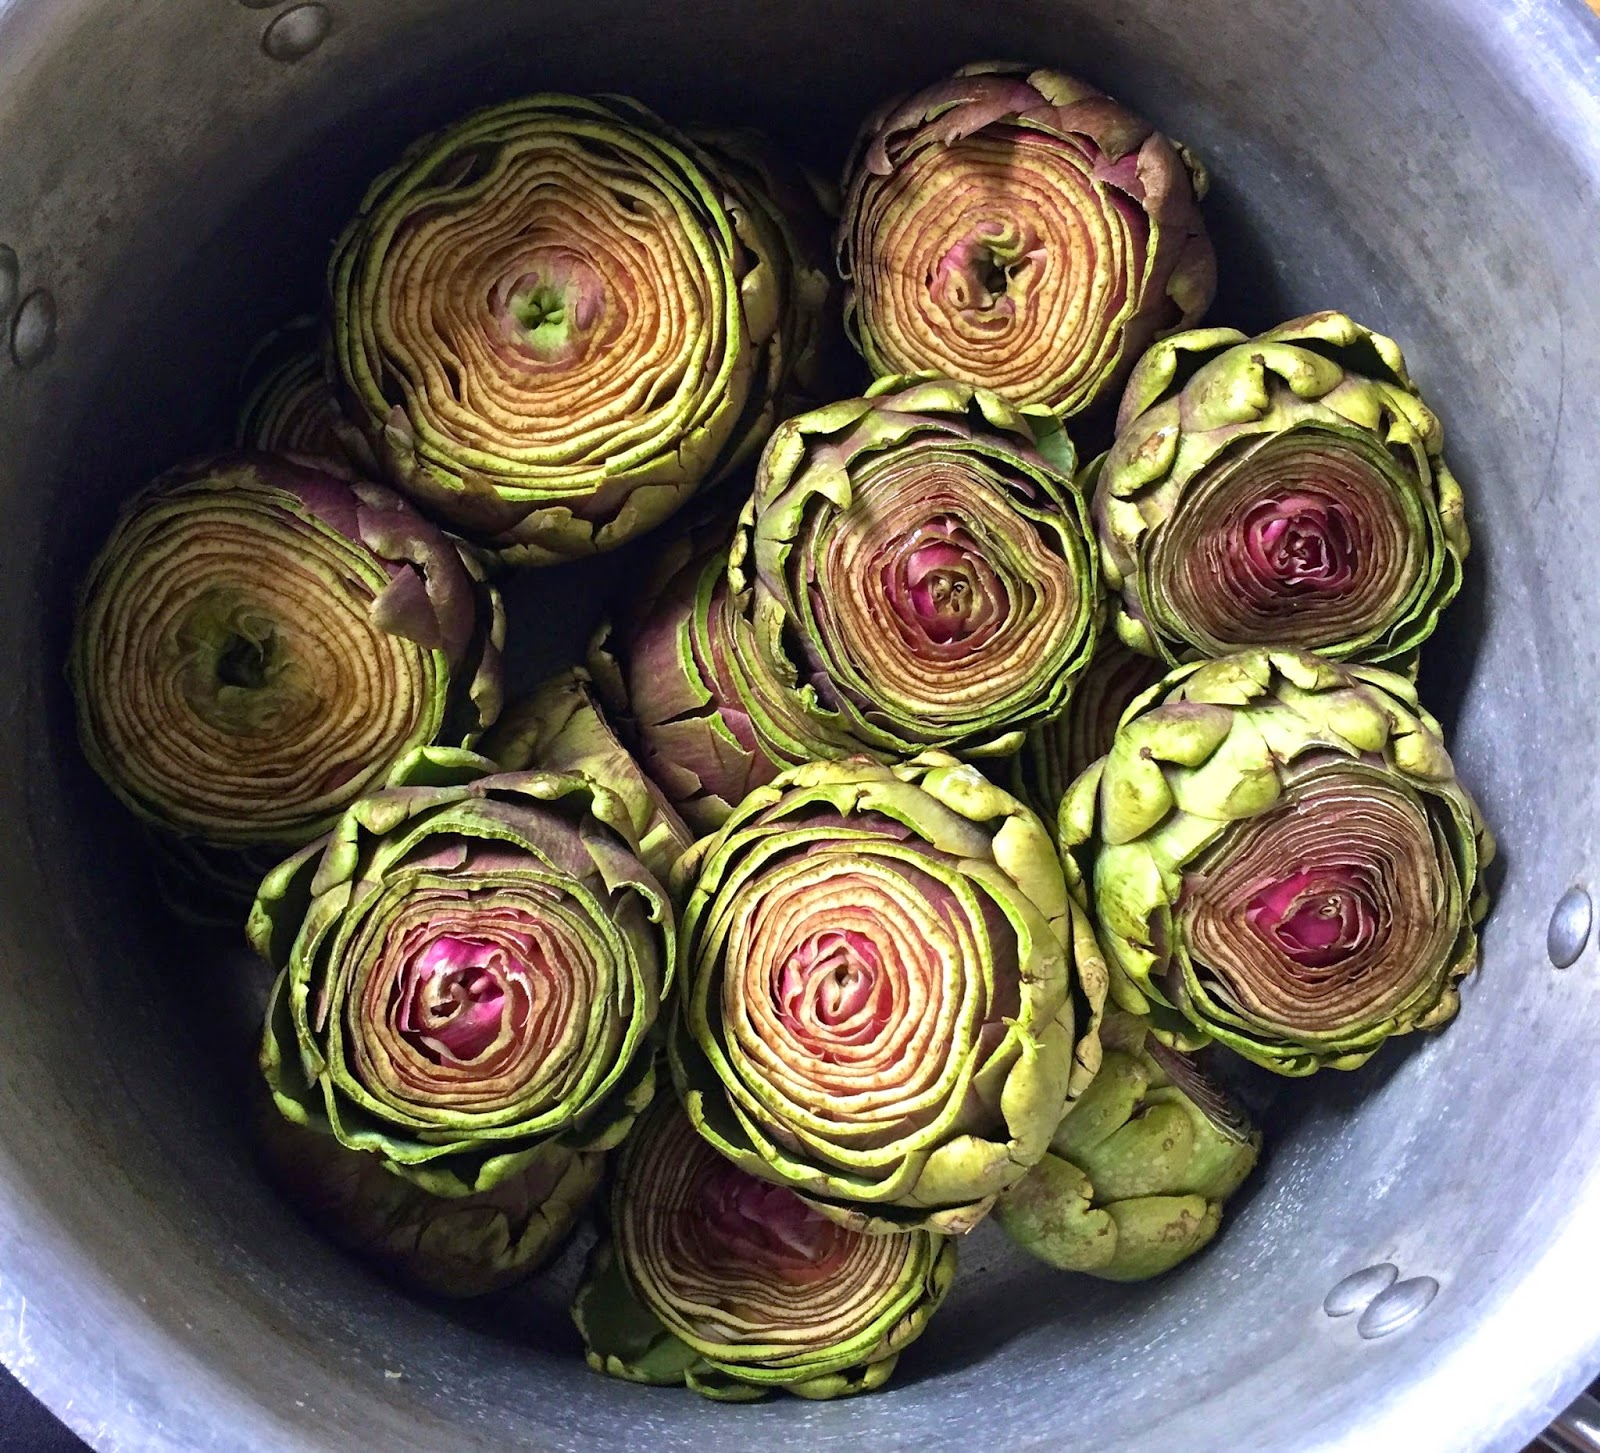 artichokes in the pot